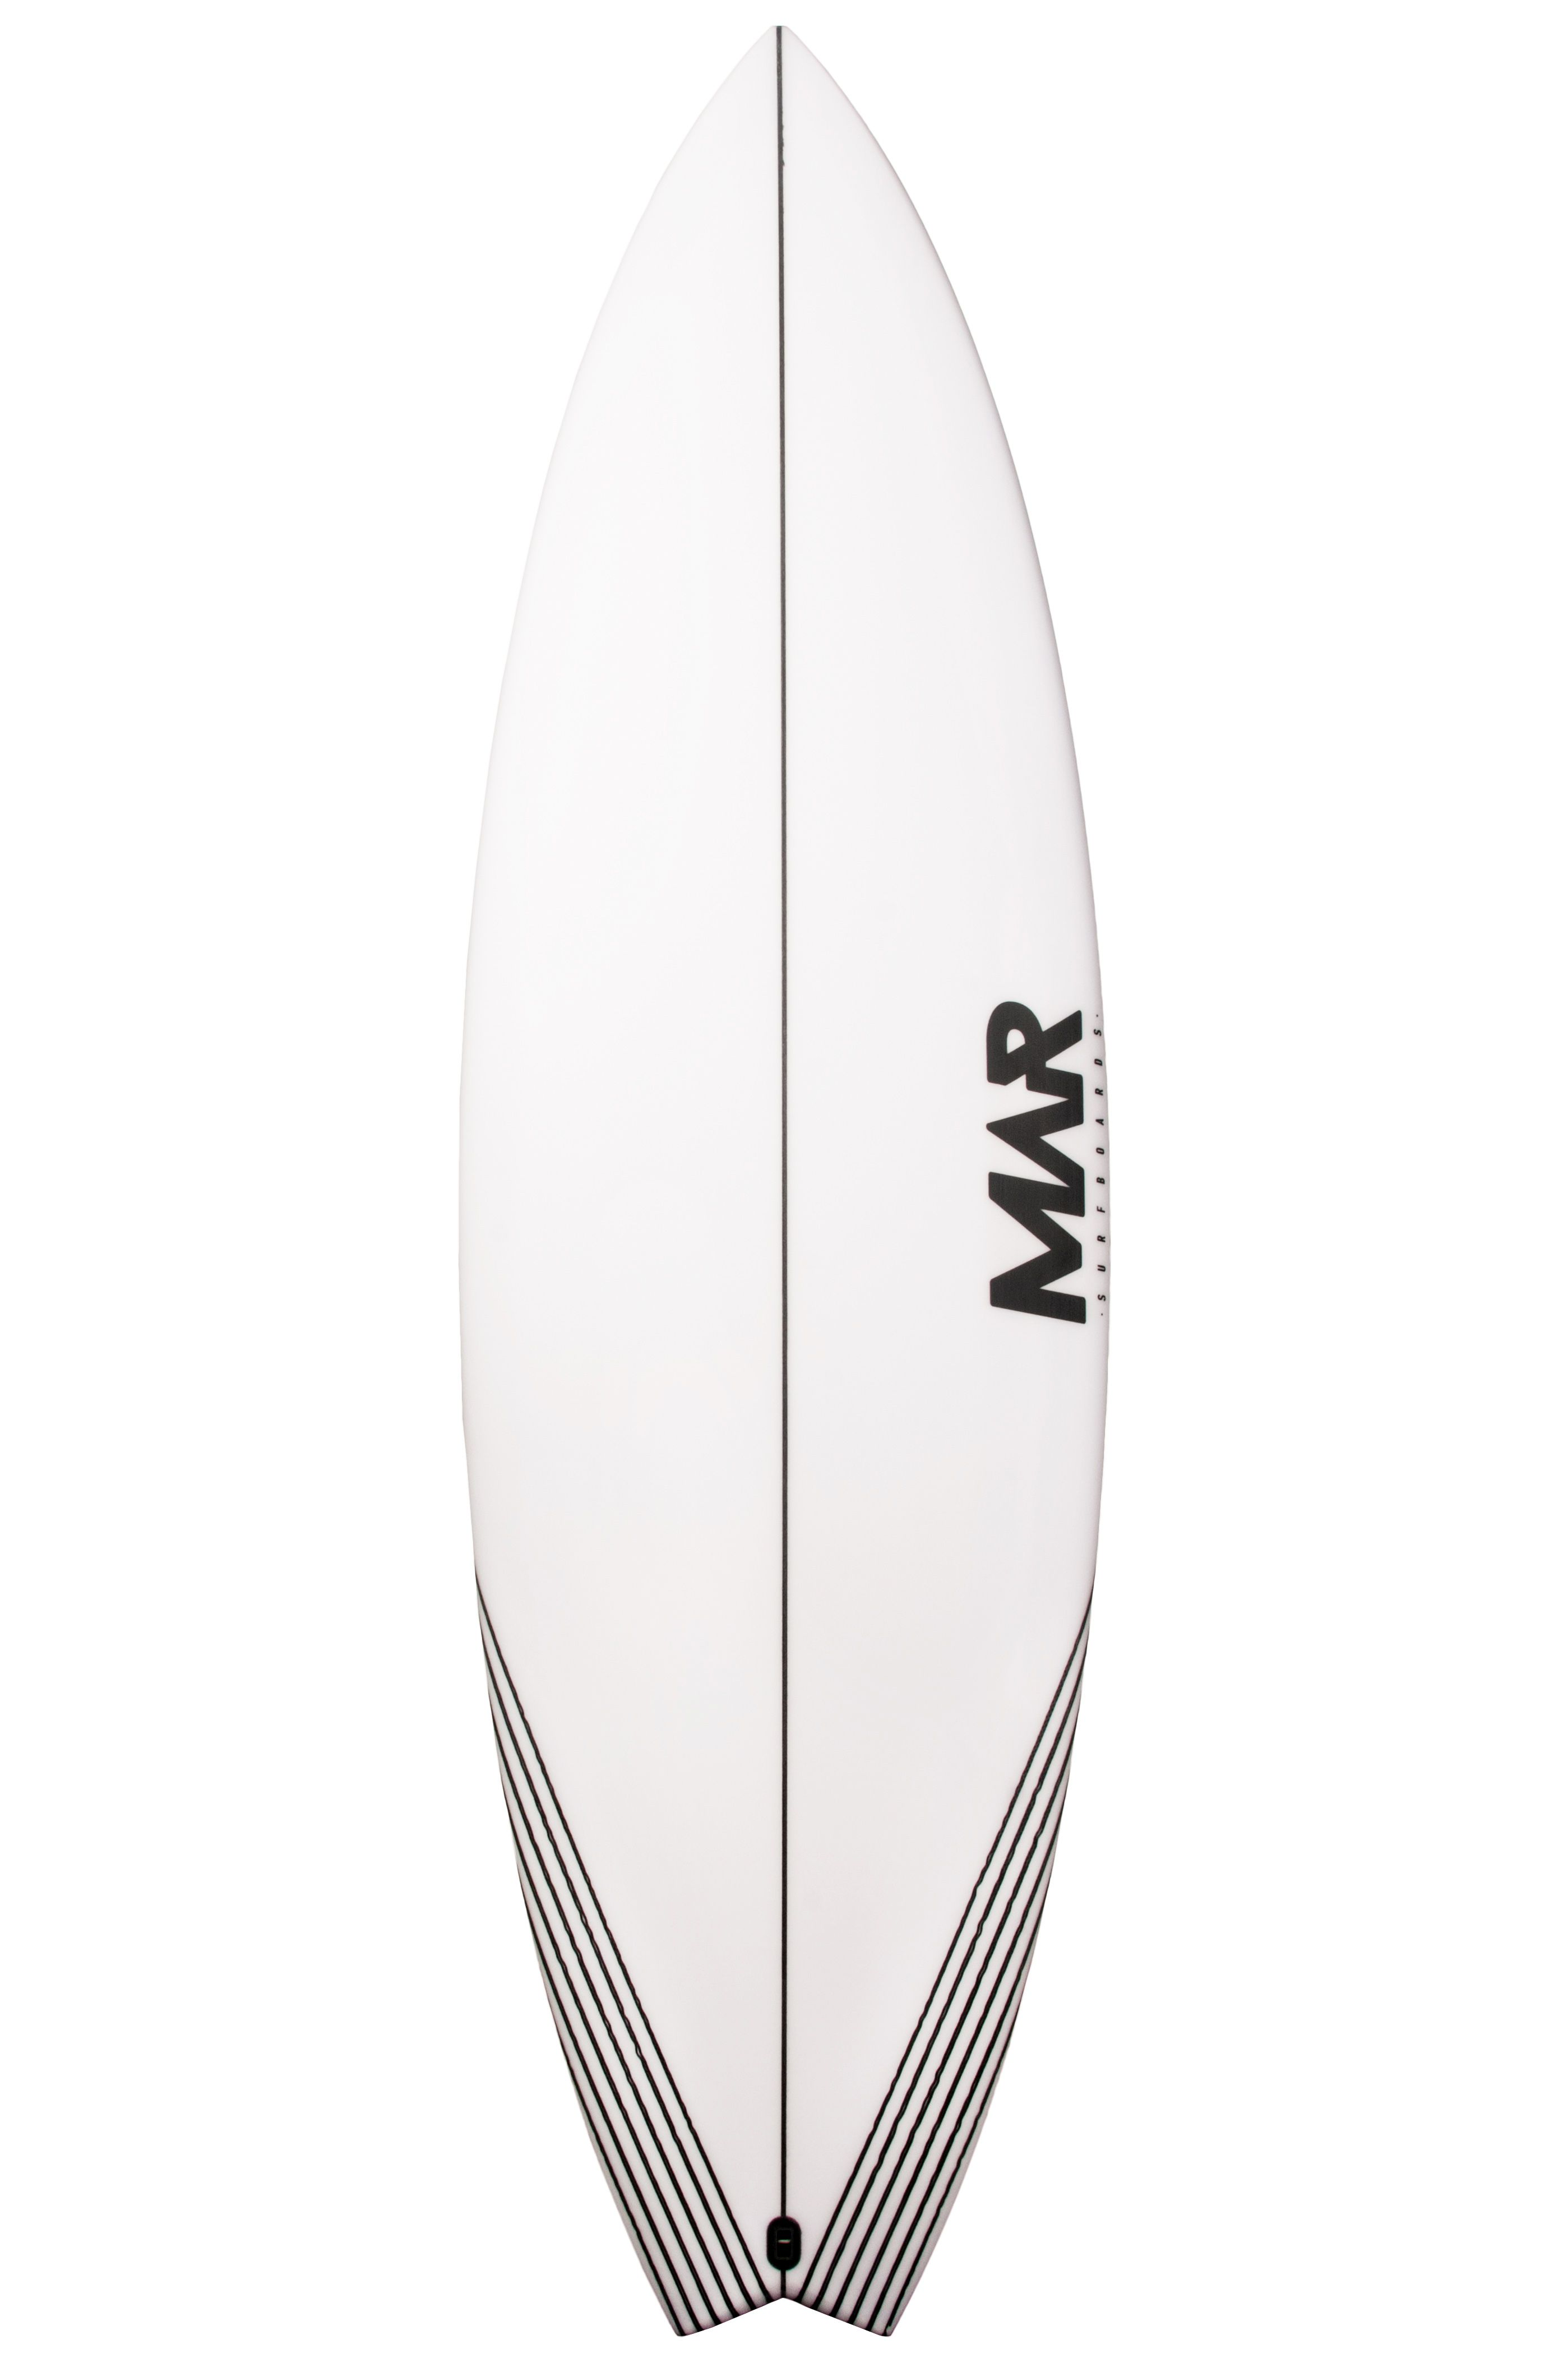 Prancha Surf Mar 6'5 PARROT PU Swallow Tail - White FCS II 6ft5